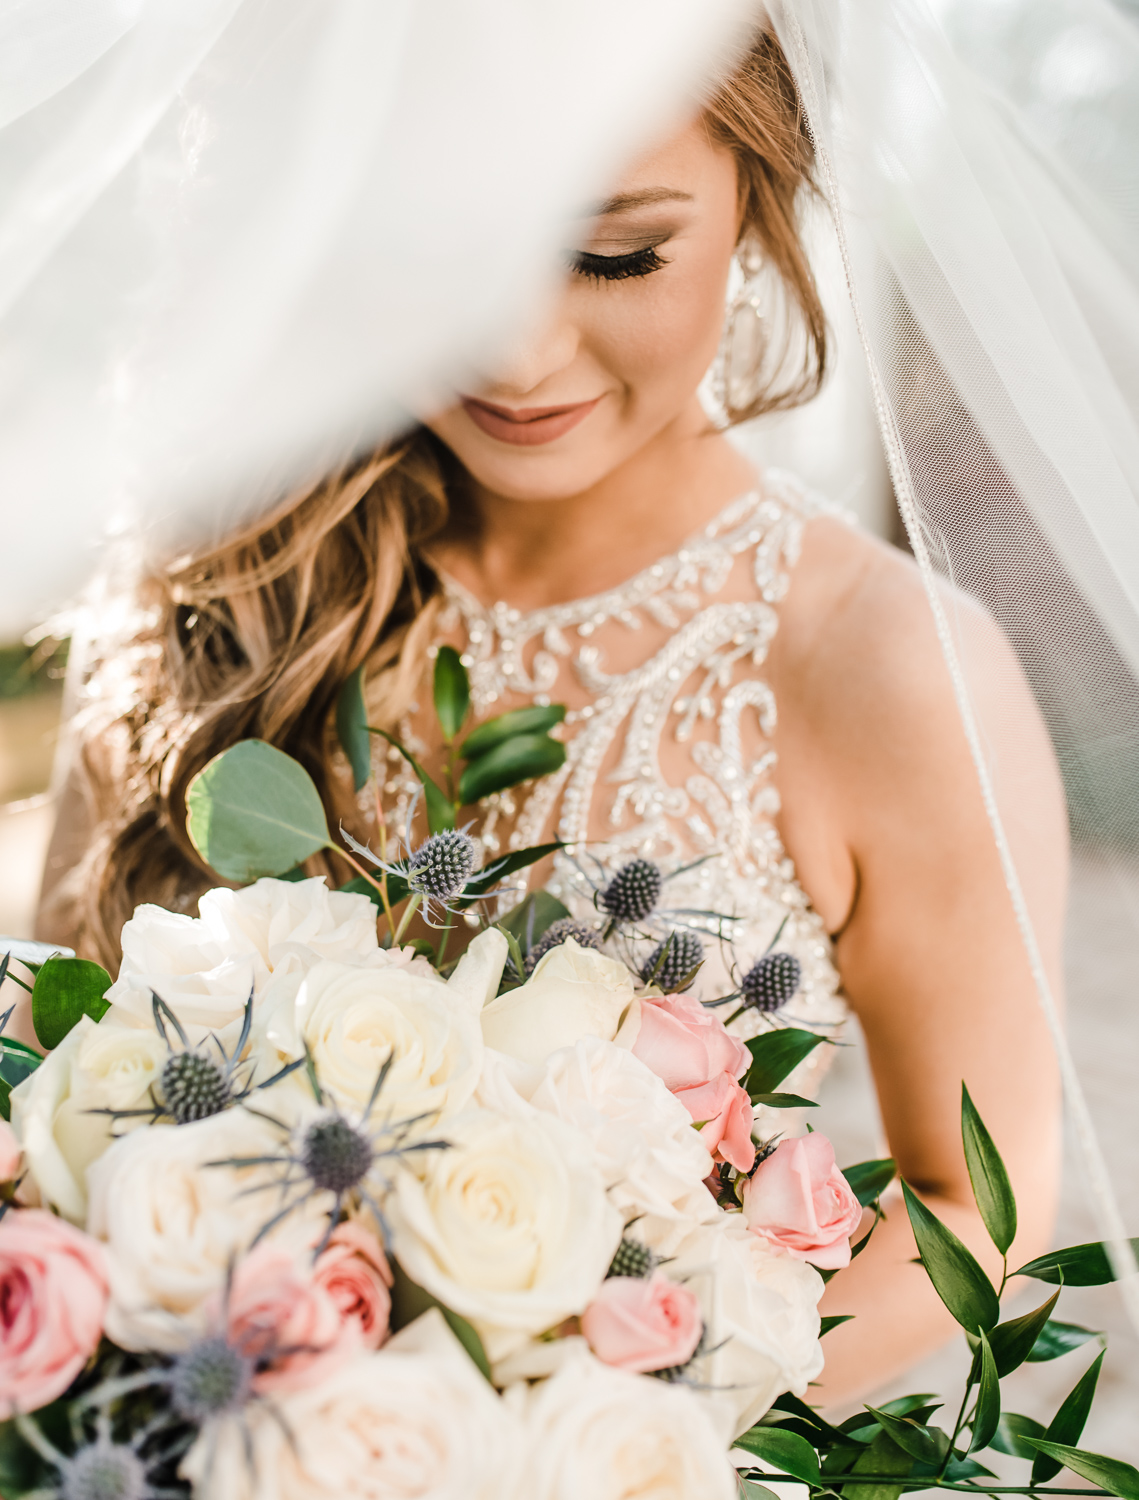 River oaks Garden club Bridal session, Bride looking at her bouquet, Houston Texas wedding photographer, Richmond, Texas, Sweet Nest Photography